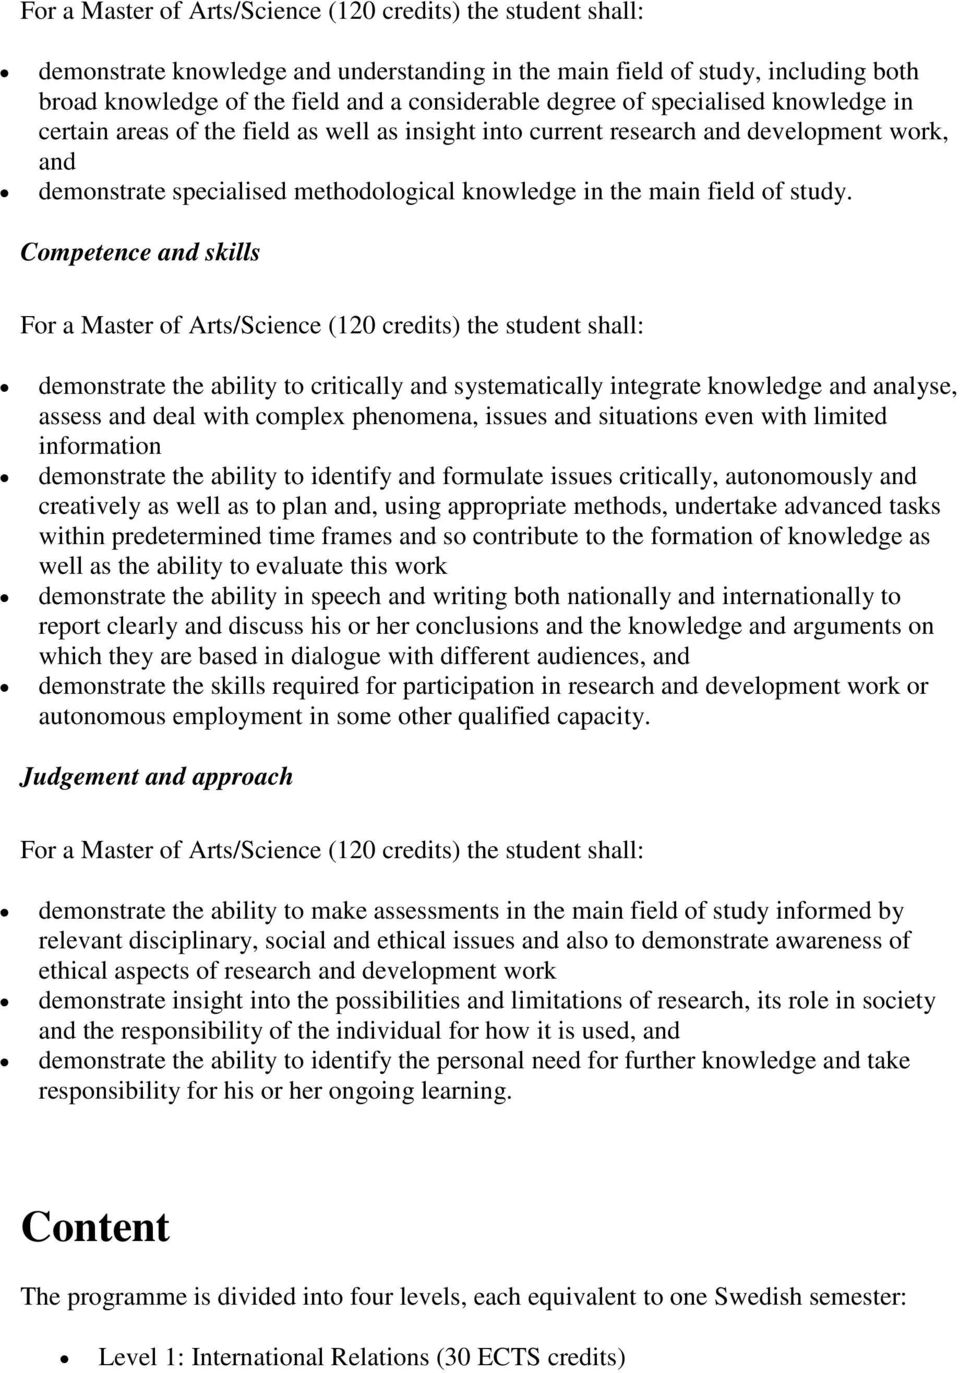 Competence and skills For a Master of Arts/Science (120 credits) the student shall: demonstrate the ability to critically and systematically integrate knowledge and analyse, assess and deal with